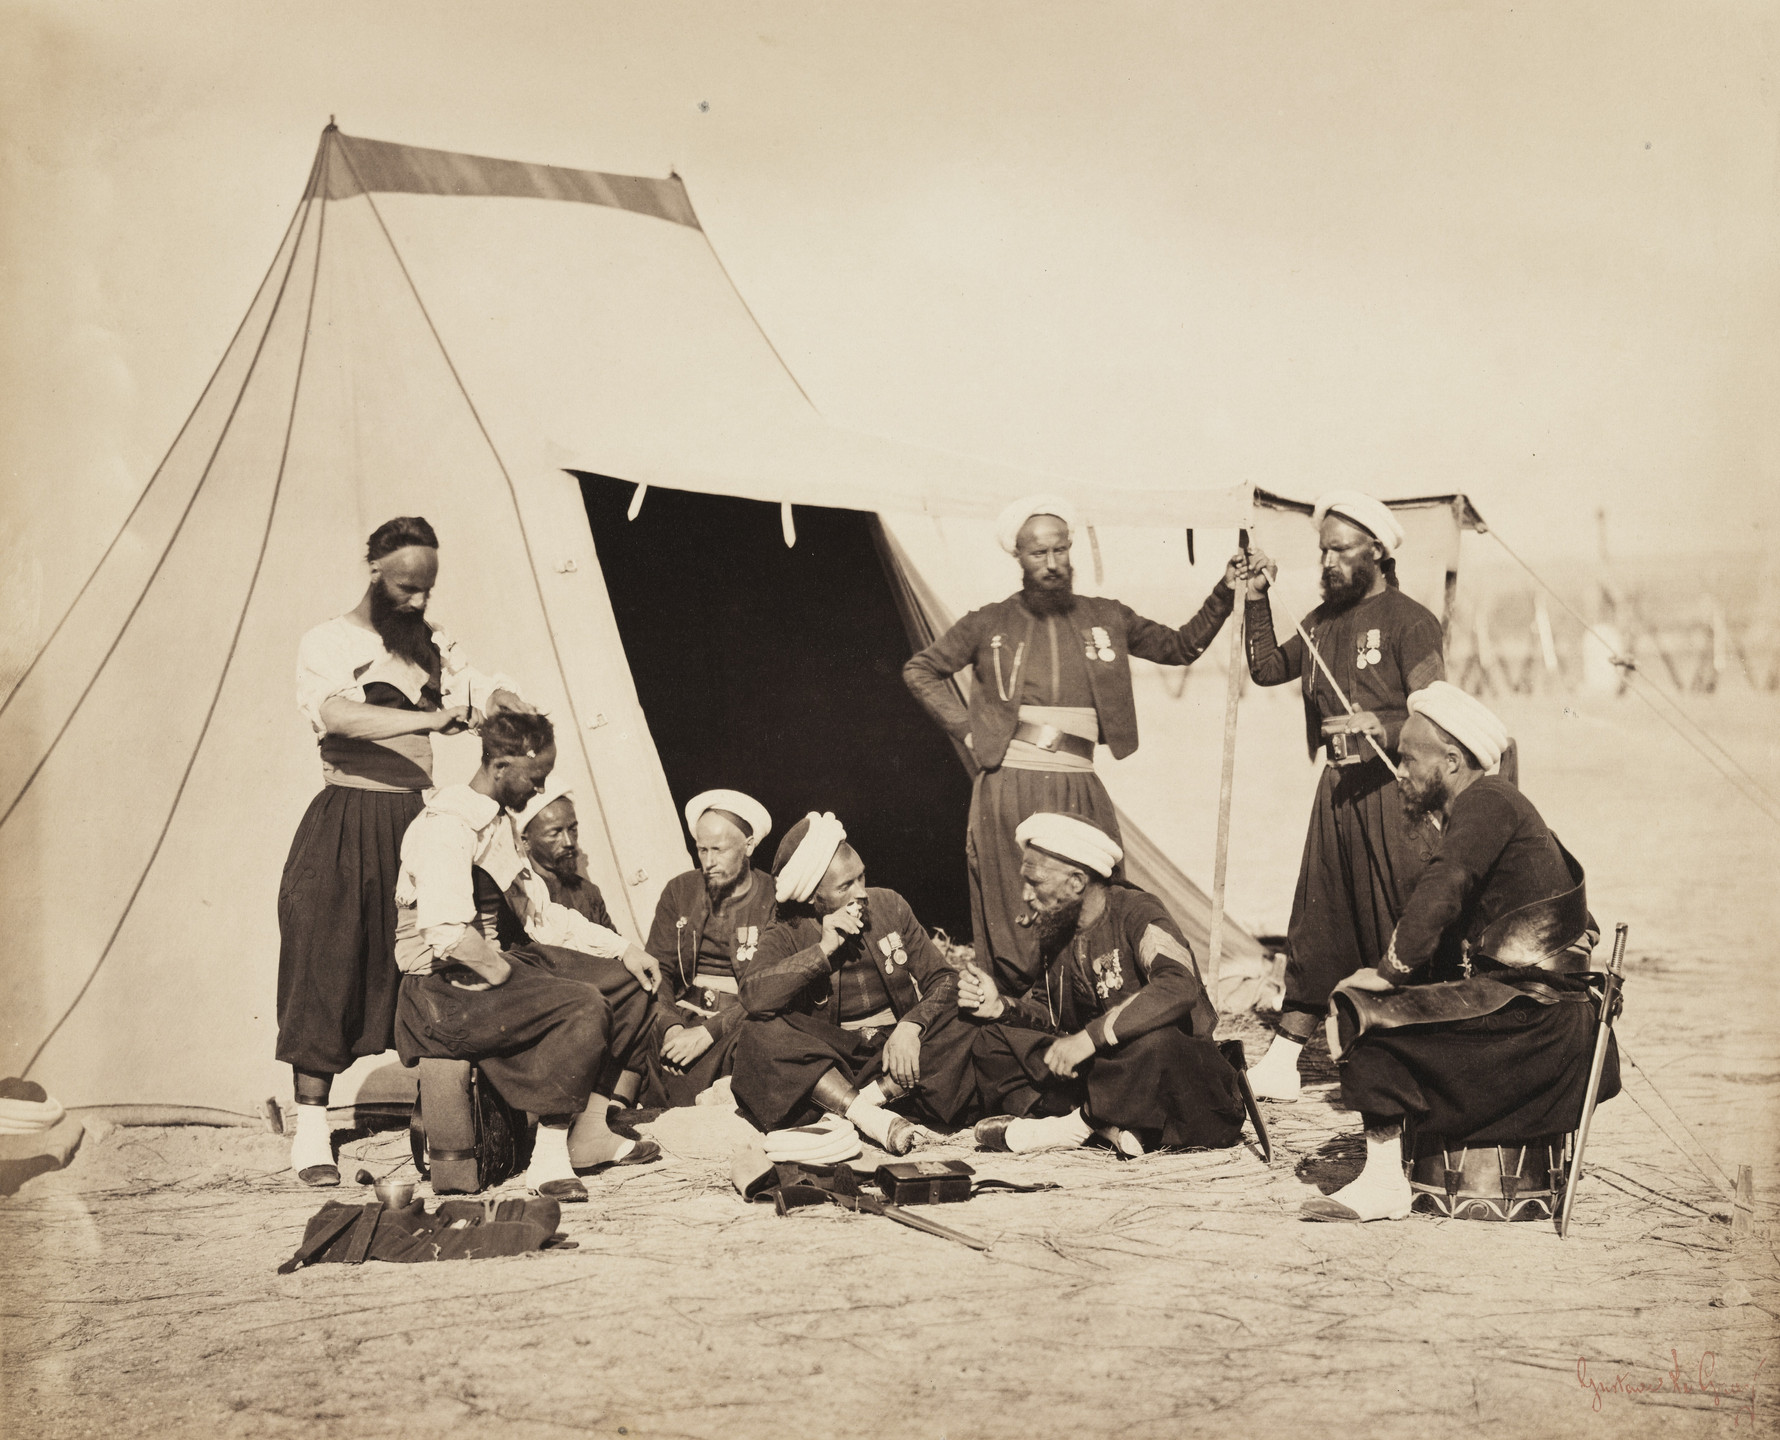 Gustave Le Gray. The Bathhouse of the Zouaves from the album Memories of the Camp de Châlons under General Decaën. 1857